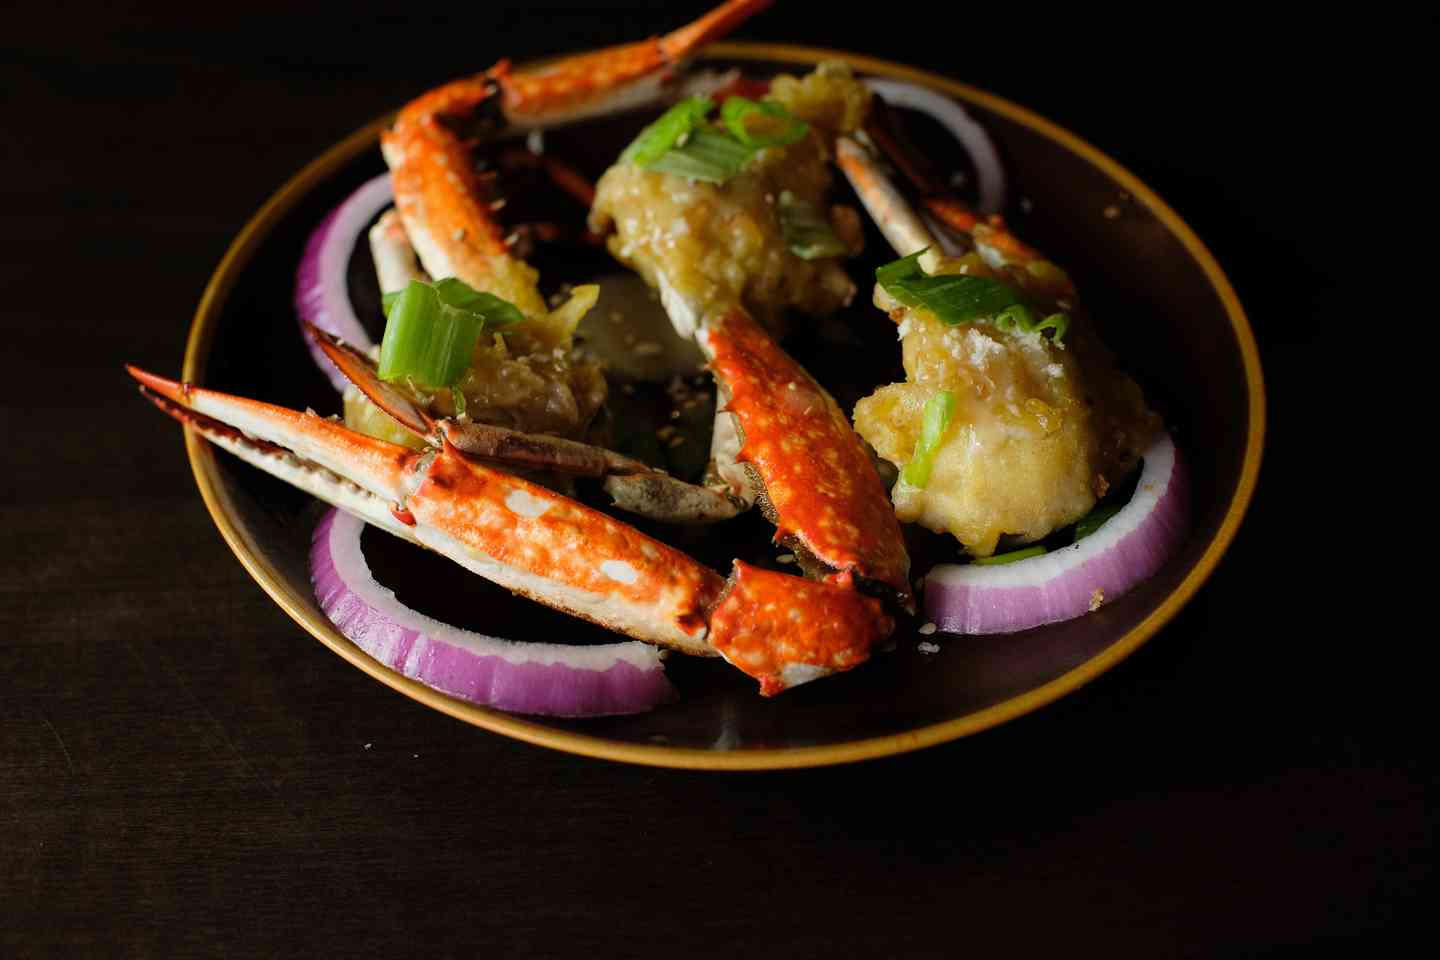 Fried Blue Crab in Sesame Sauce